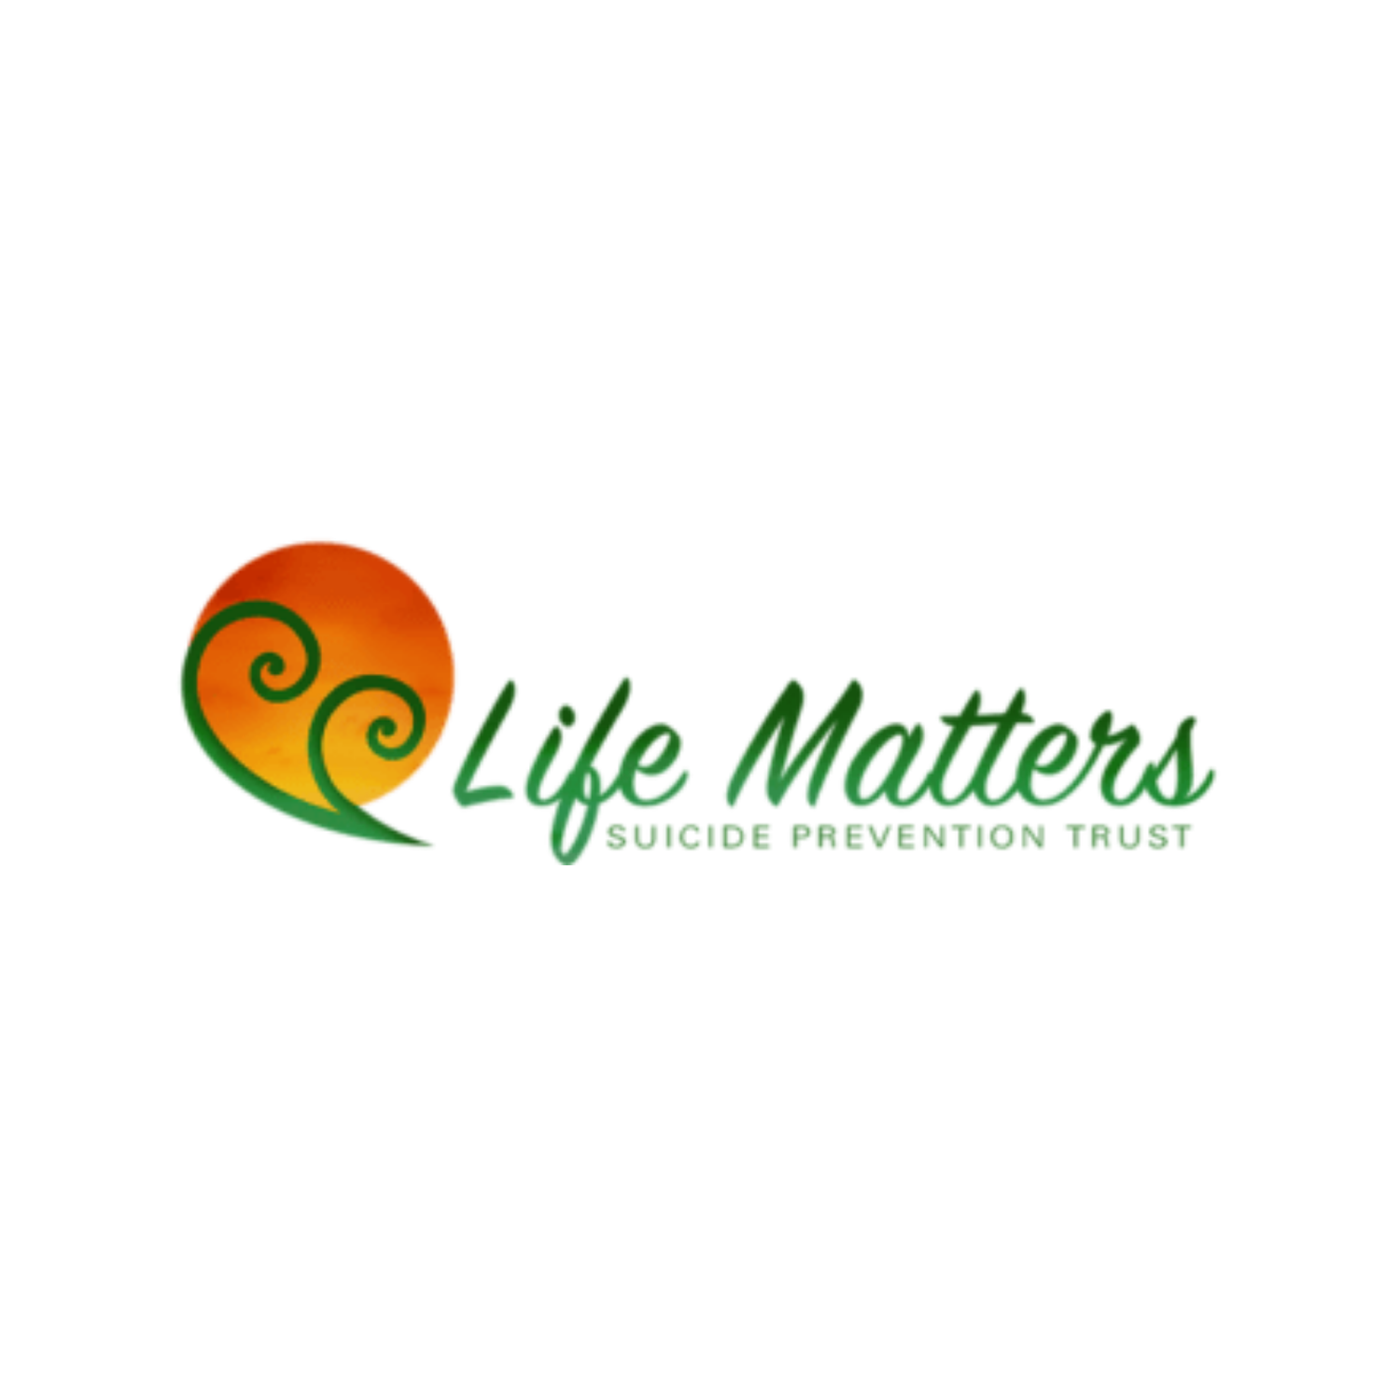 Life Matters - 24-07-2019 - S3 Ep 08 - Experiences with Mental Health - Kyra Gillies and Max Becker Part2